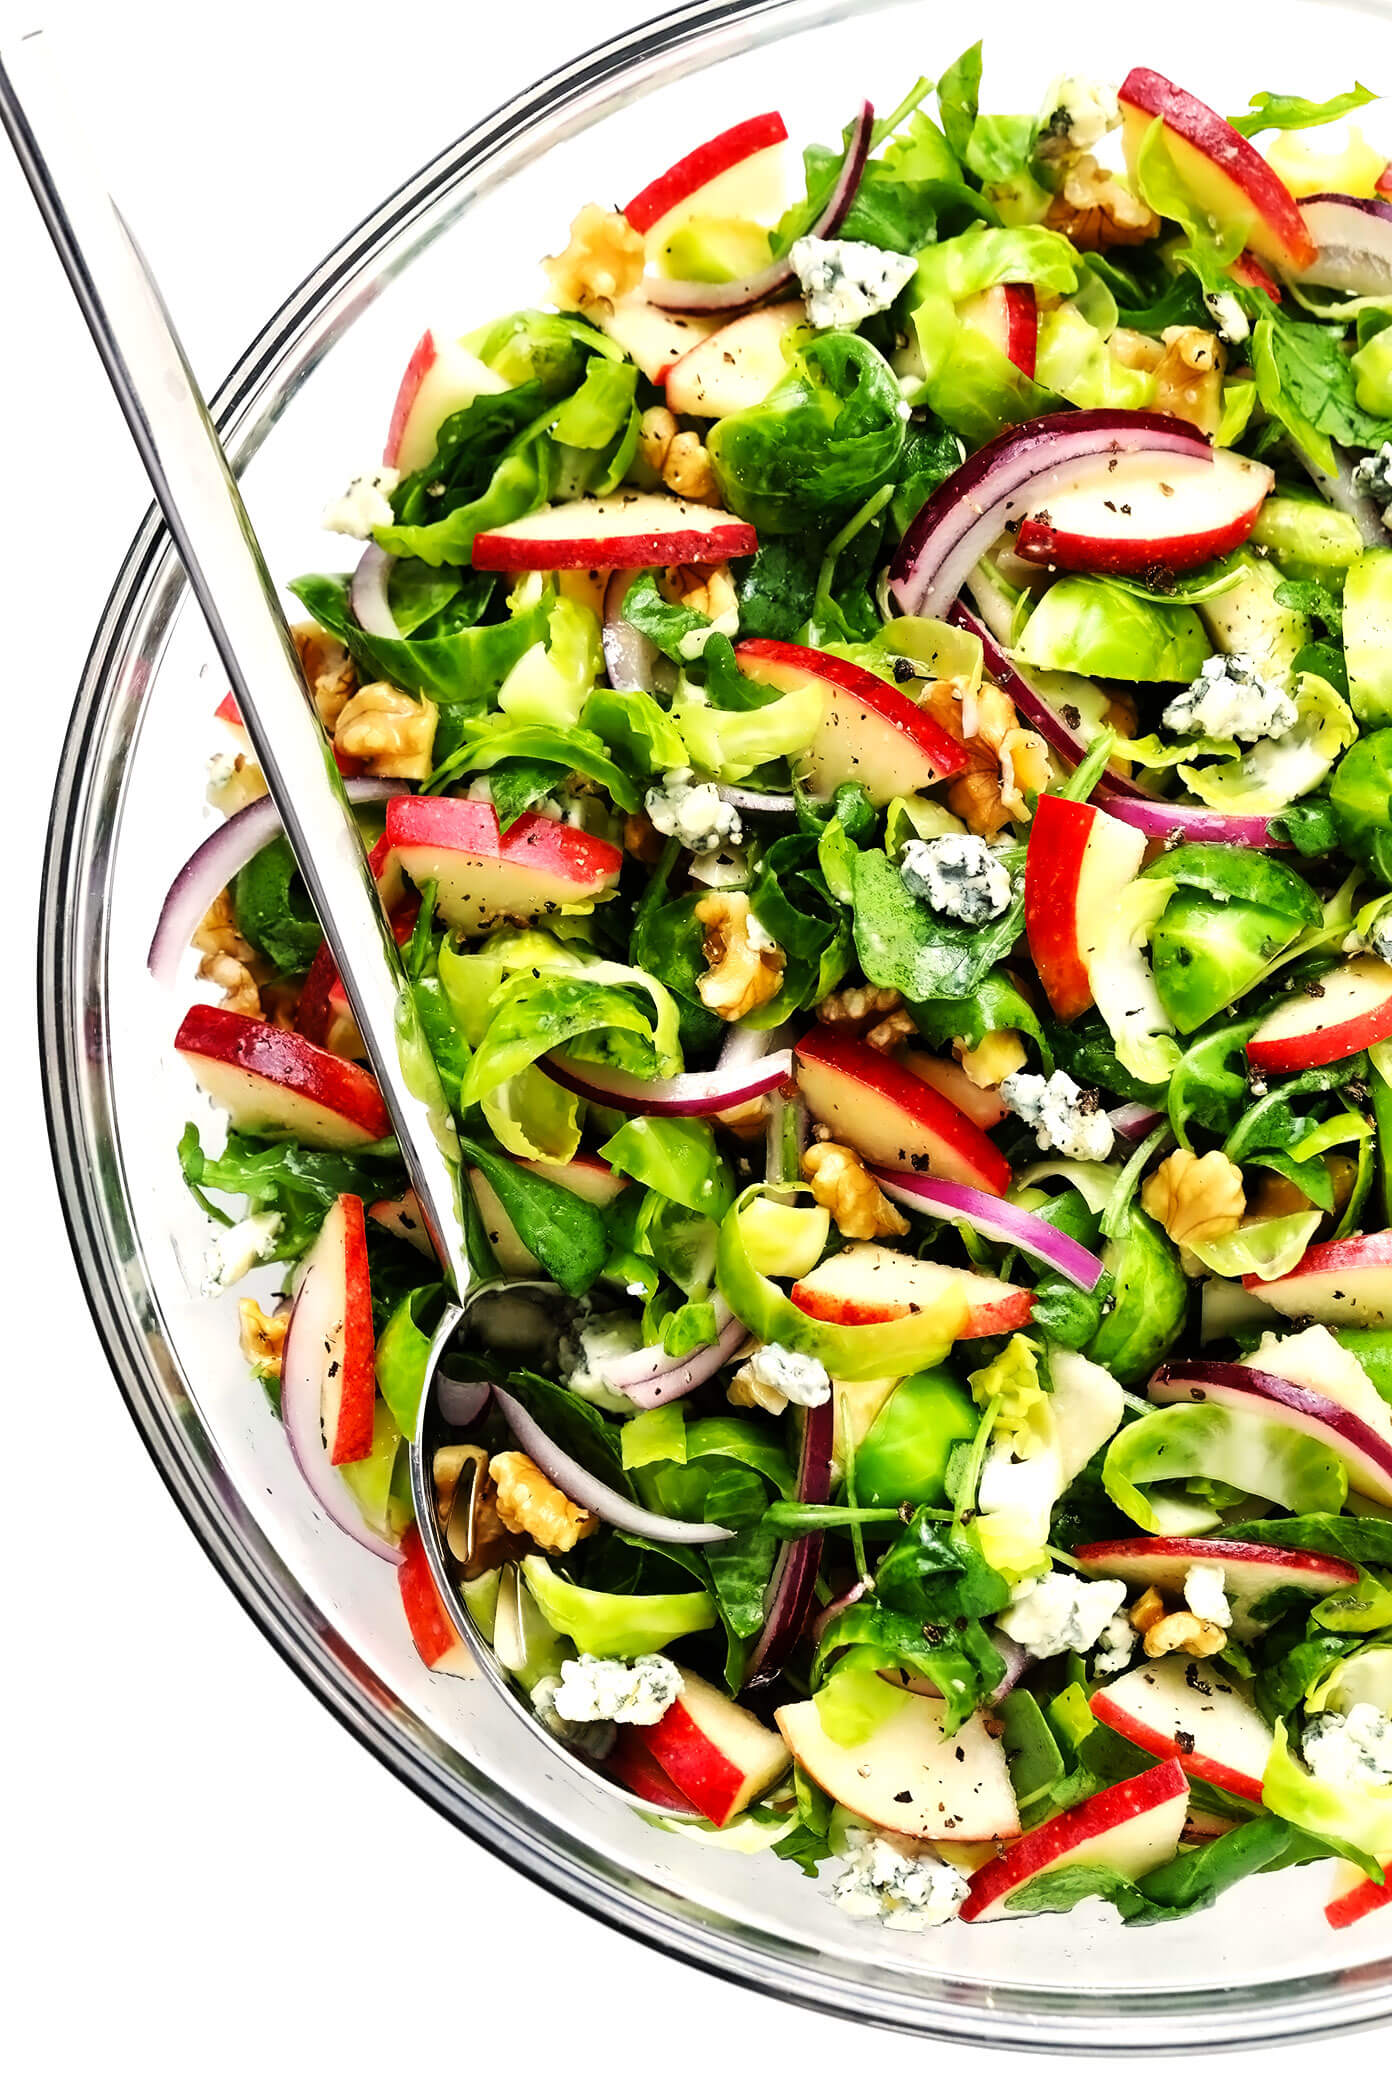 Brussels Sprouts Salad with Apples in Mixing Bowl